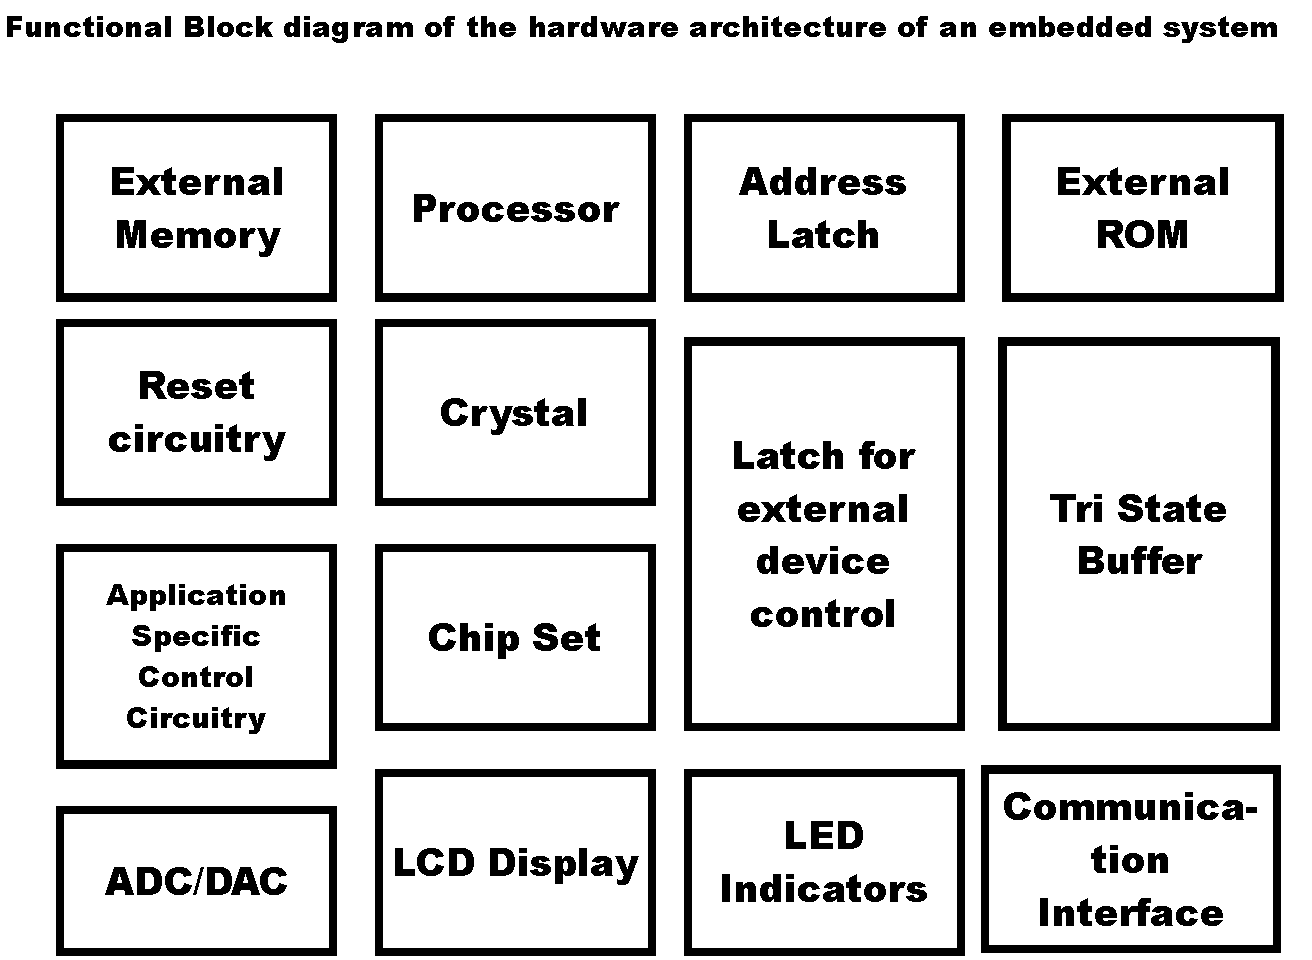 Its All About Embedded: The Building Blocks of Embedded Systems